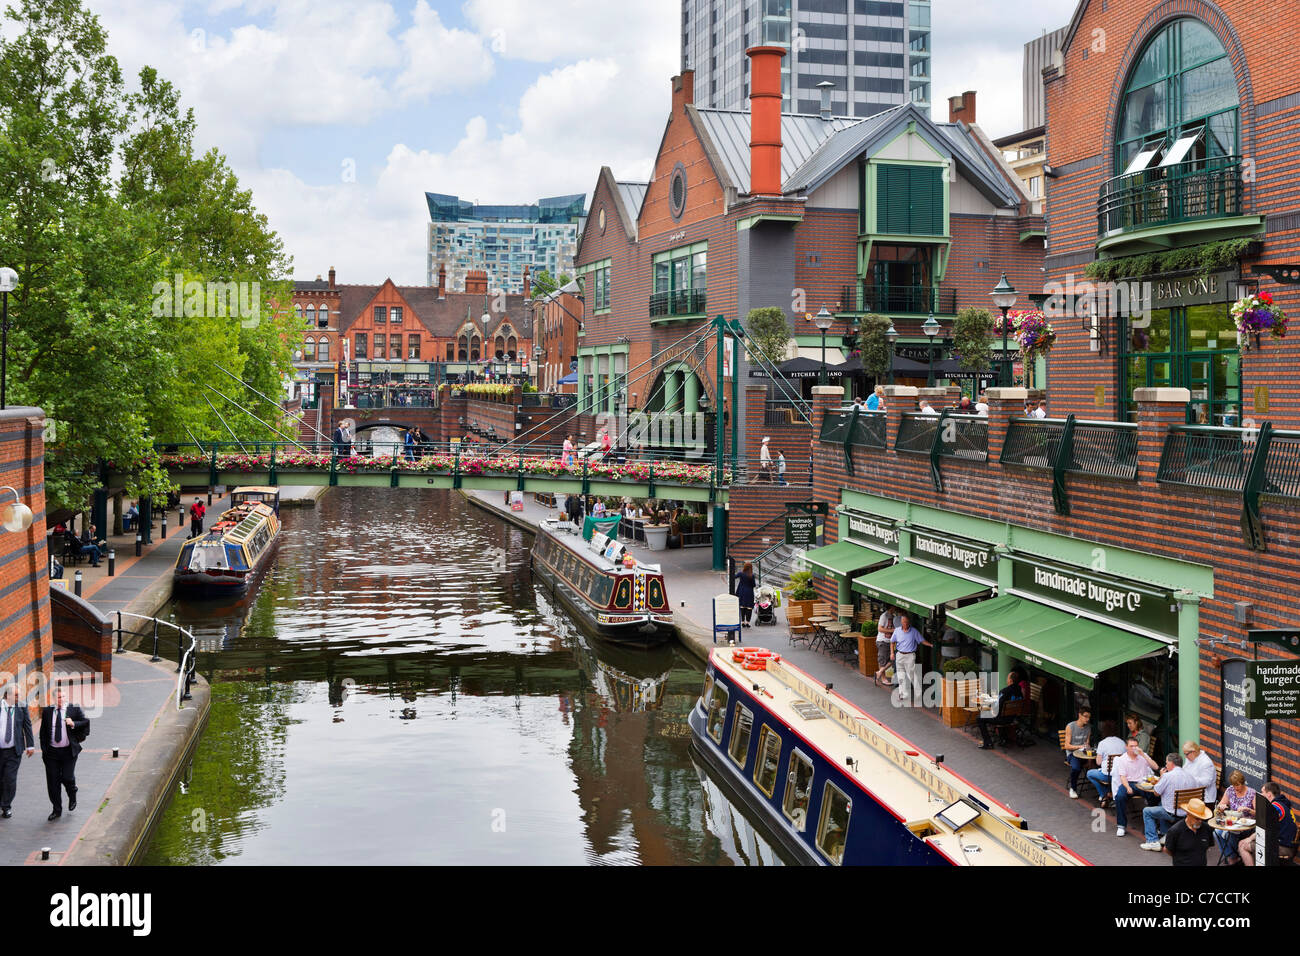 Narrowboats In Front Of Restaurants On The Canal At Brindley Place Stock Photo Royalty Free